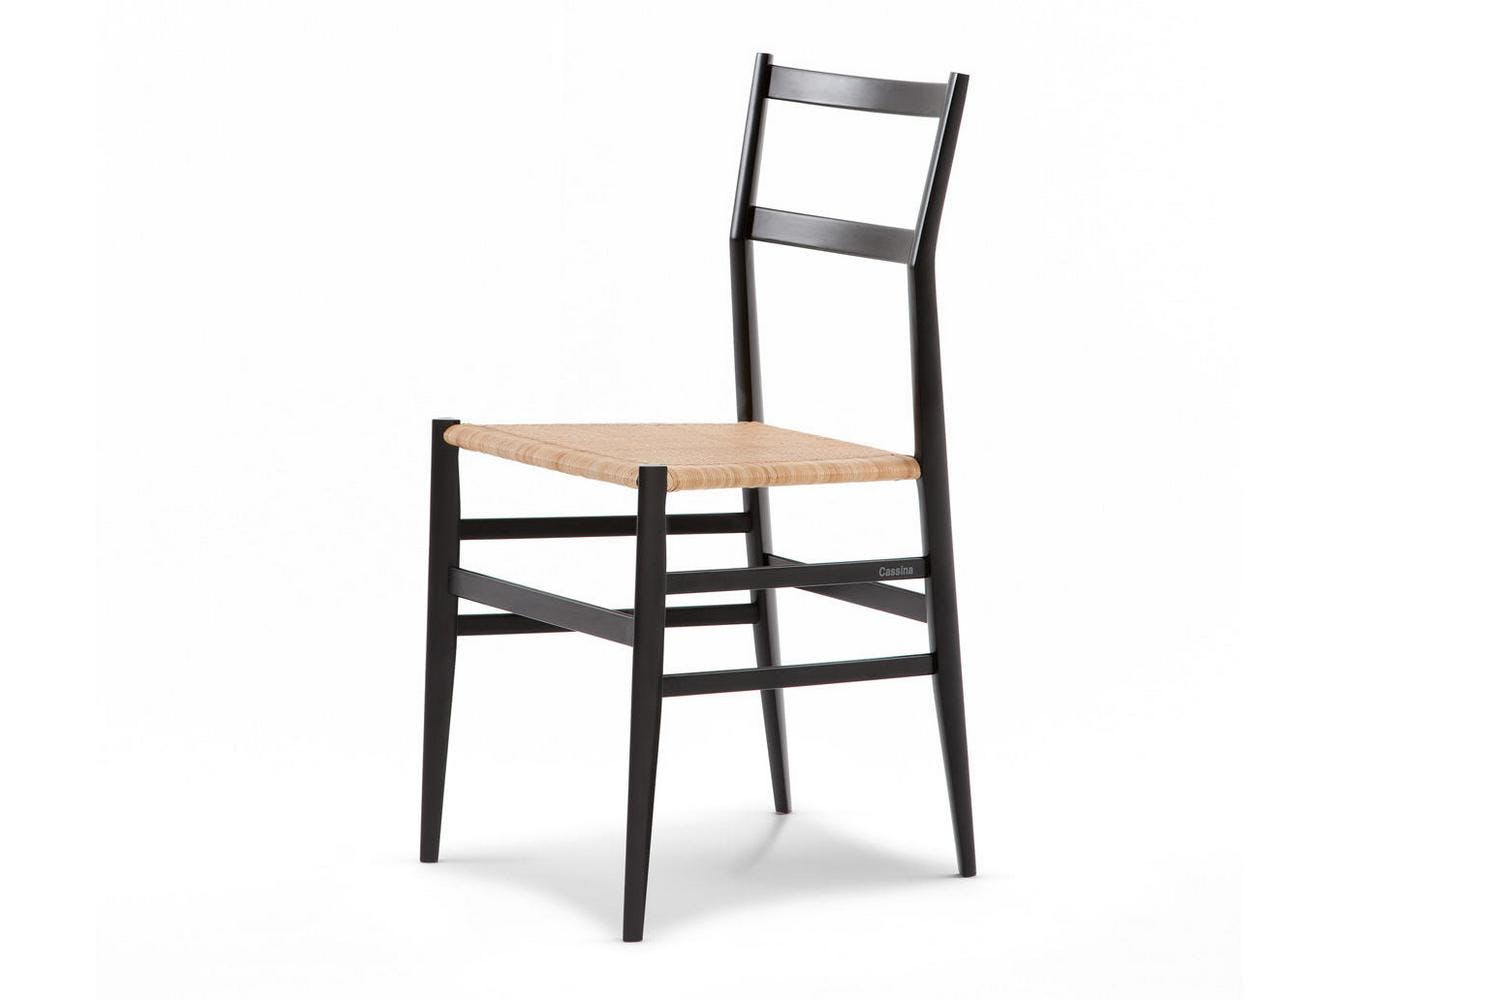 699 Chair By Gio Ponti For Cassina